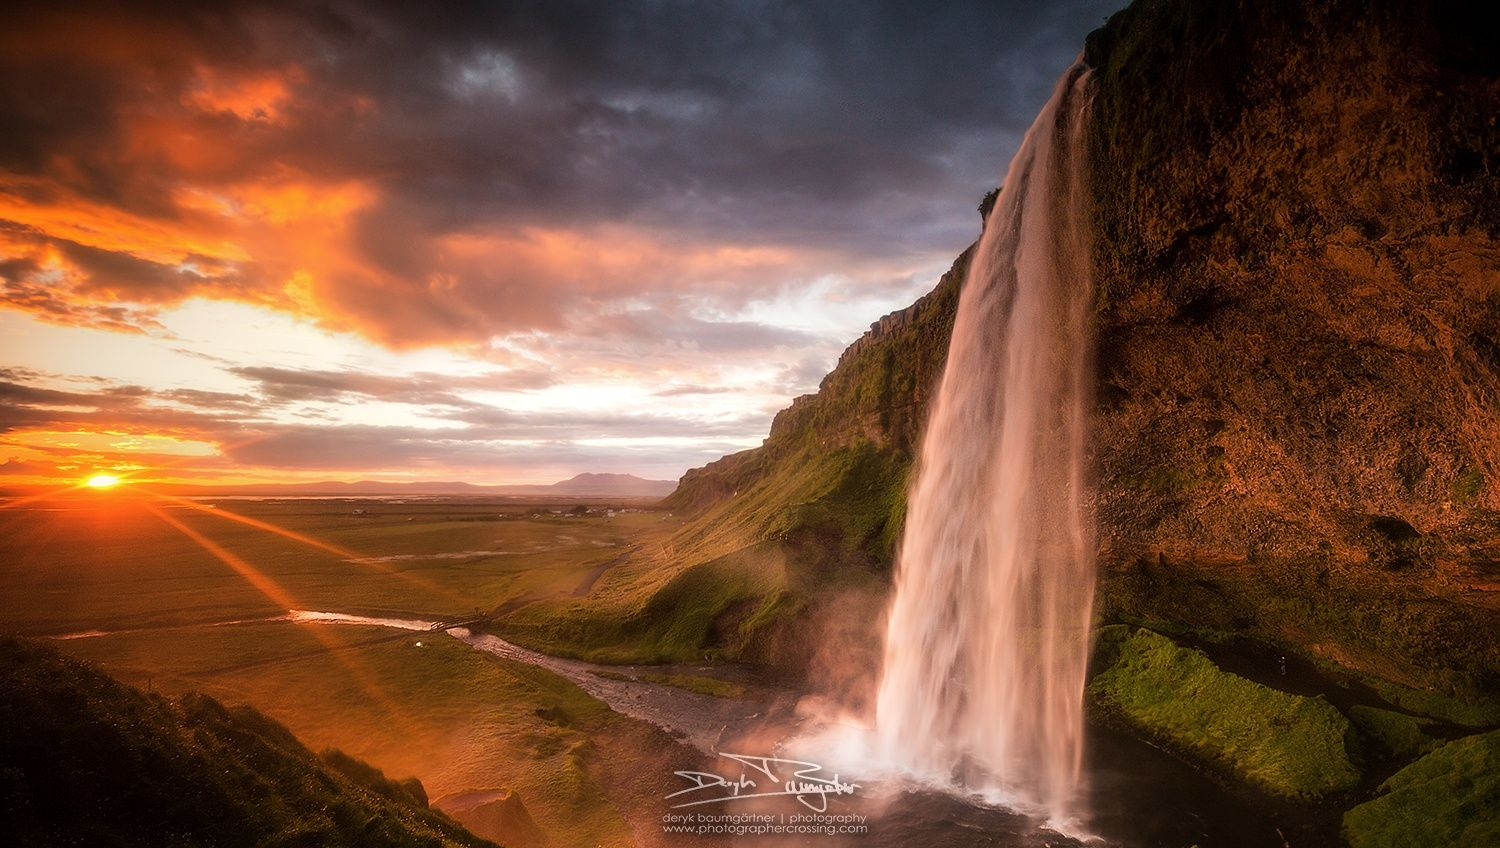 [ icelandfoss ] by Deryk Baumgärtner on 500px  )